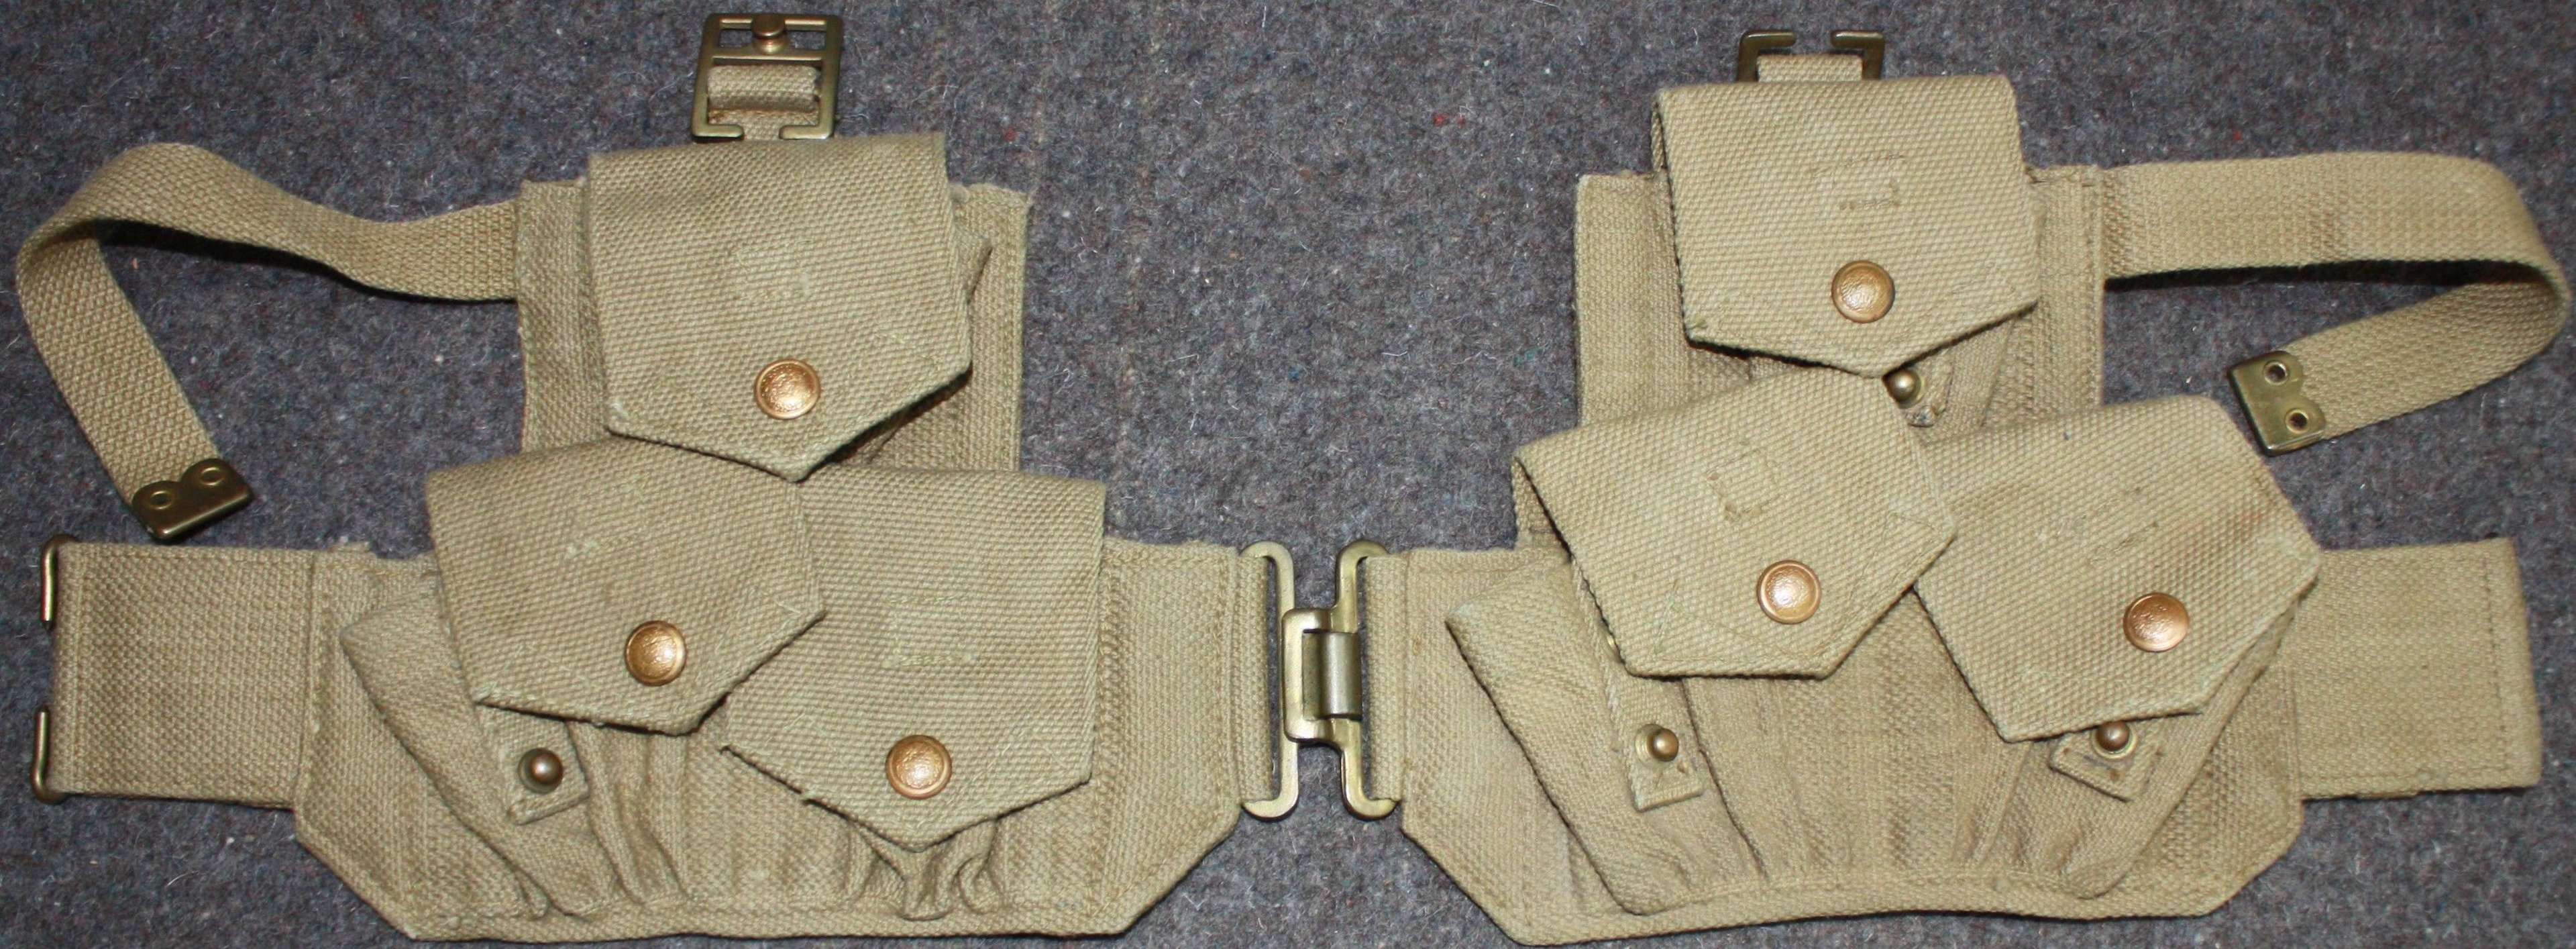 A PAIR OF 1940 CAVALRY PATTERN AMMO POUCHES